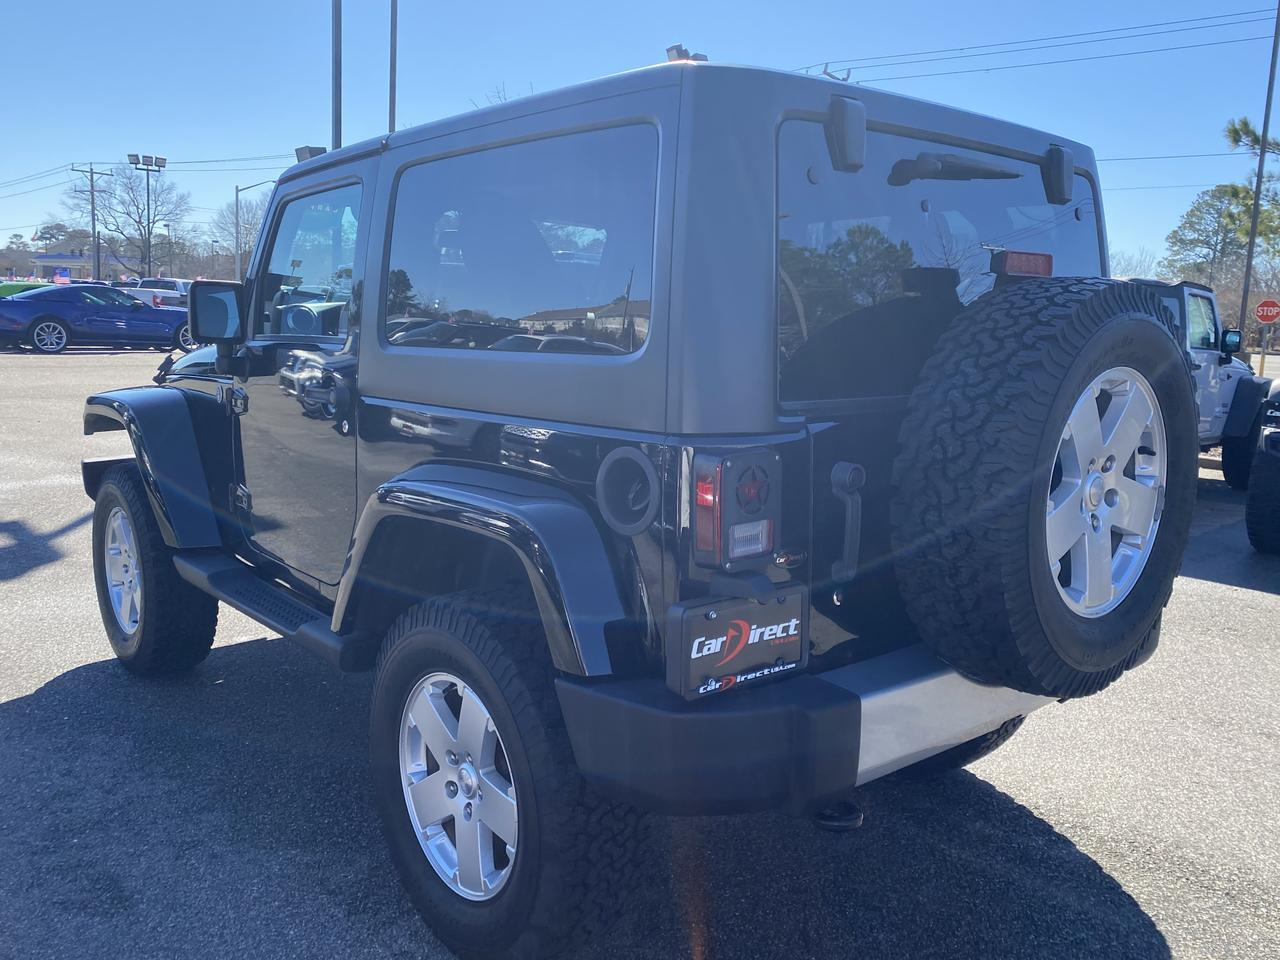 2012 JEEP WRANGLER SAHARA 4X4, DVD ENTERTAINMENT, NAVIGATION, HARD TOP, RUNNING BOARDS, VERY CLEAN,  ONLY 62K MILES! Virginia Beach VA